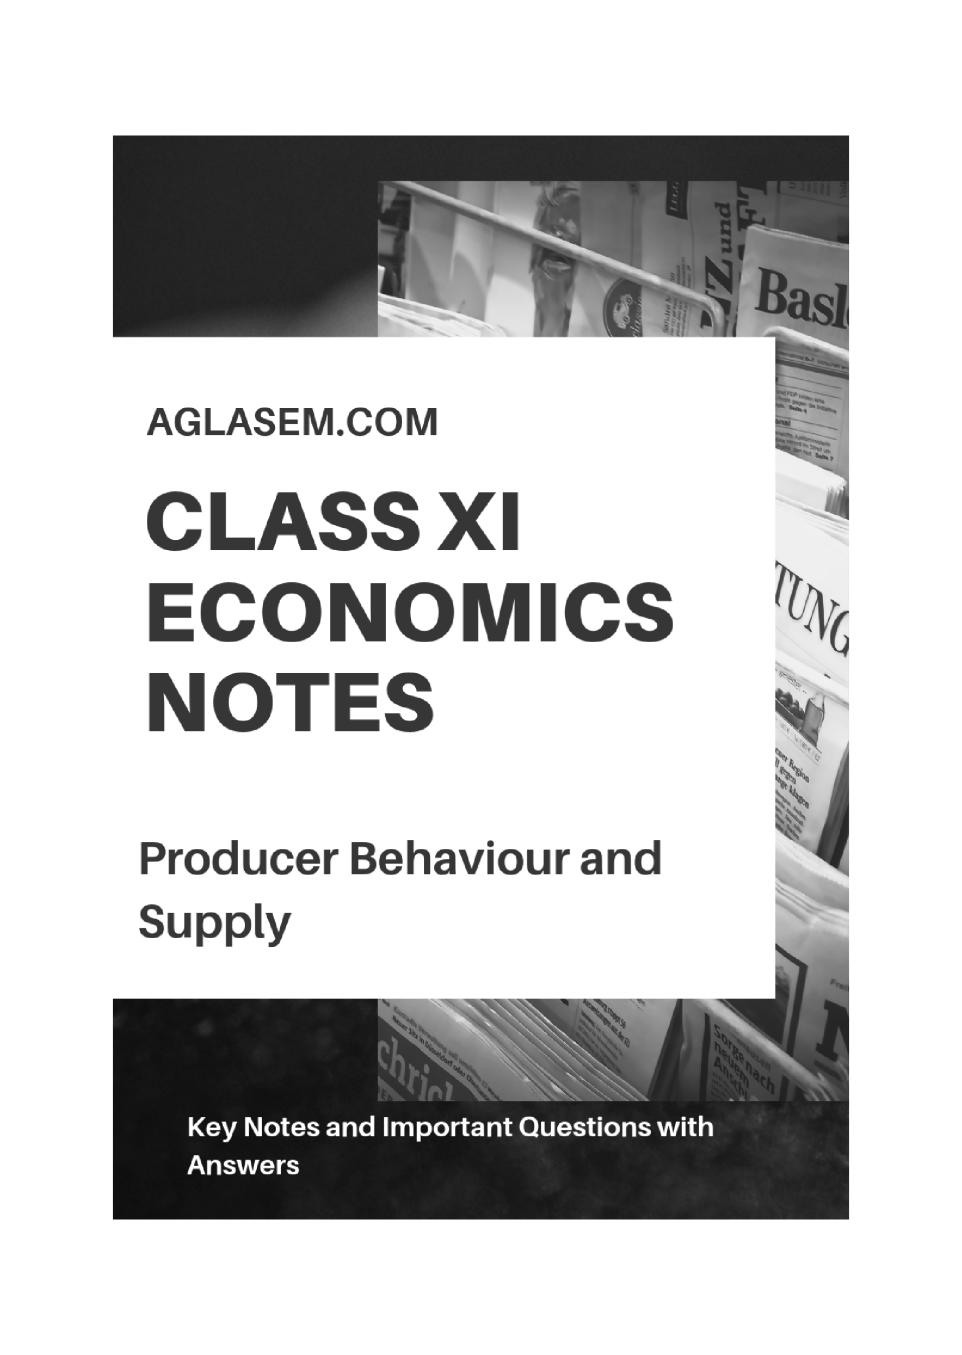 Class 11 Economics Notes for Producer Behaviour and Supply